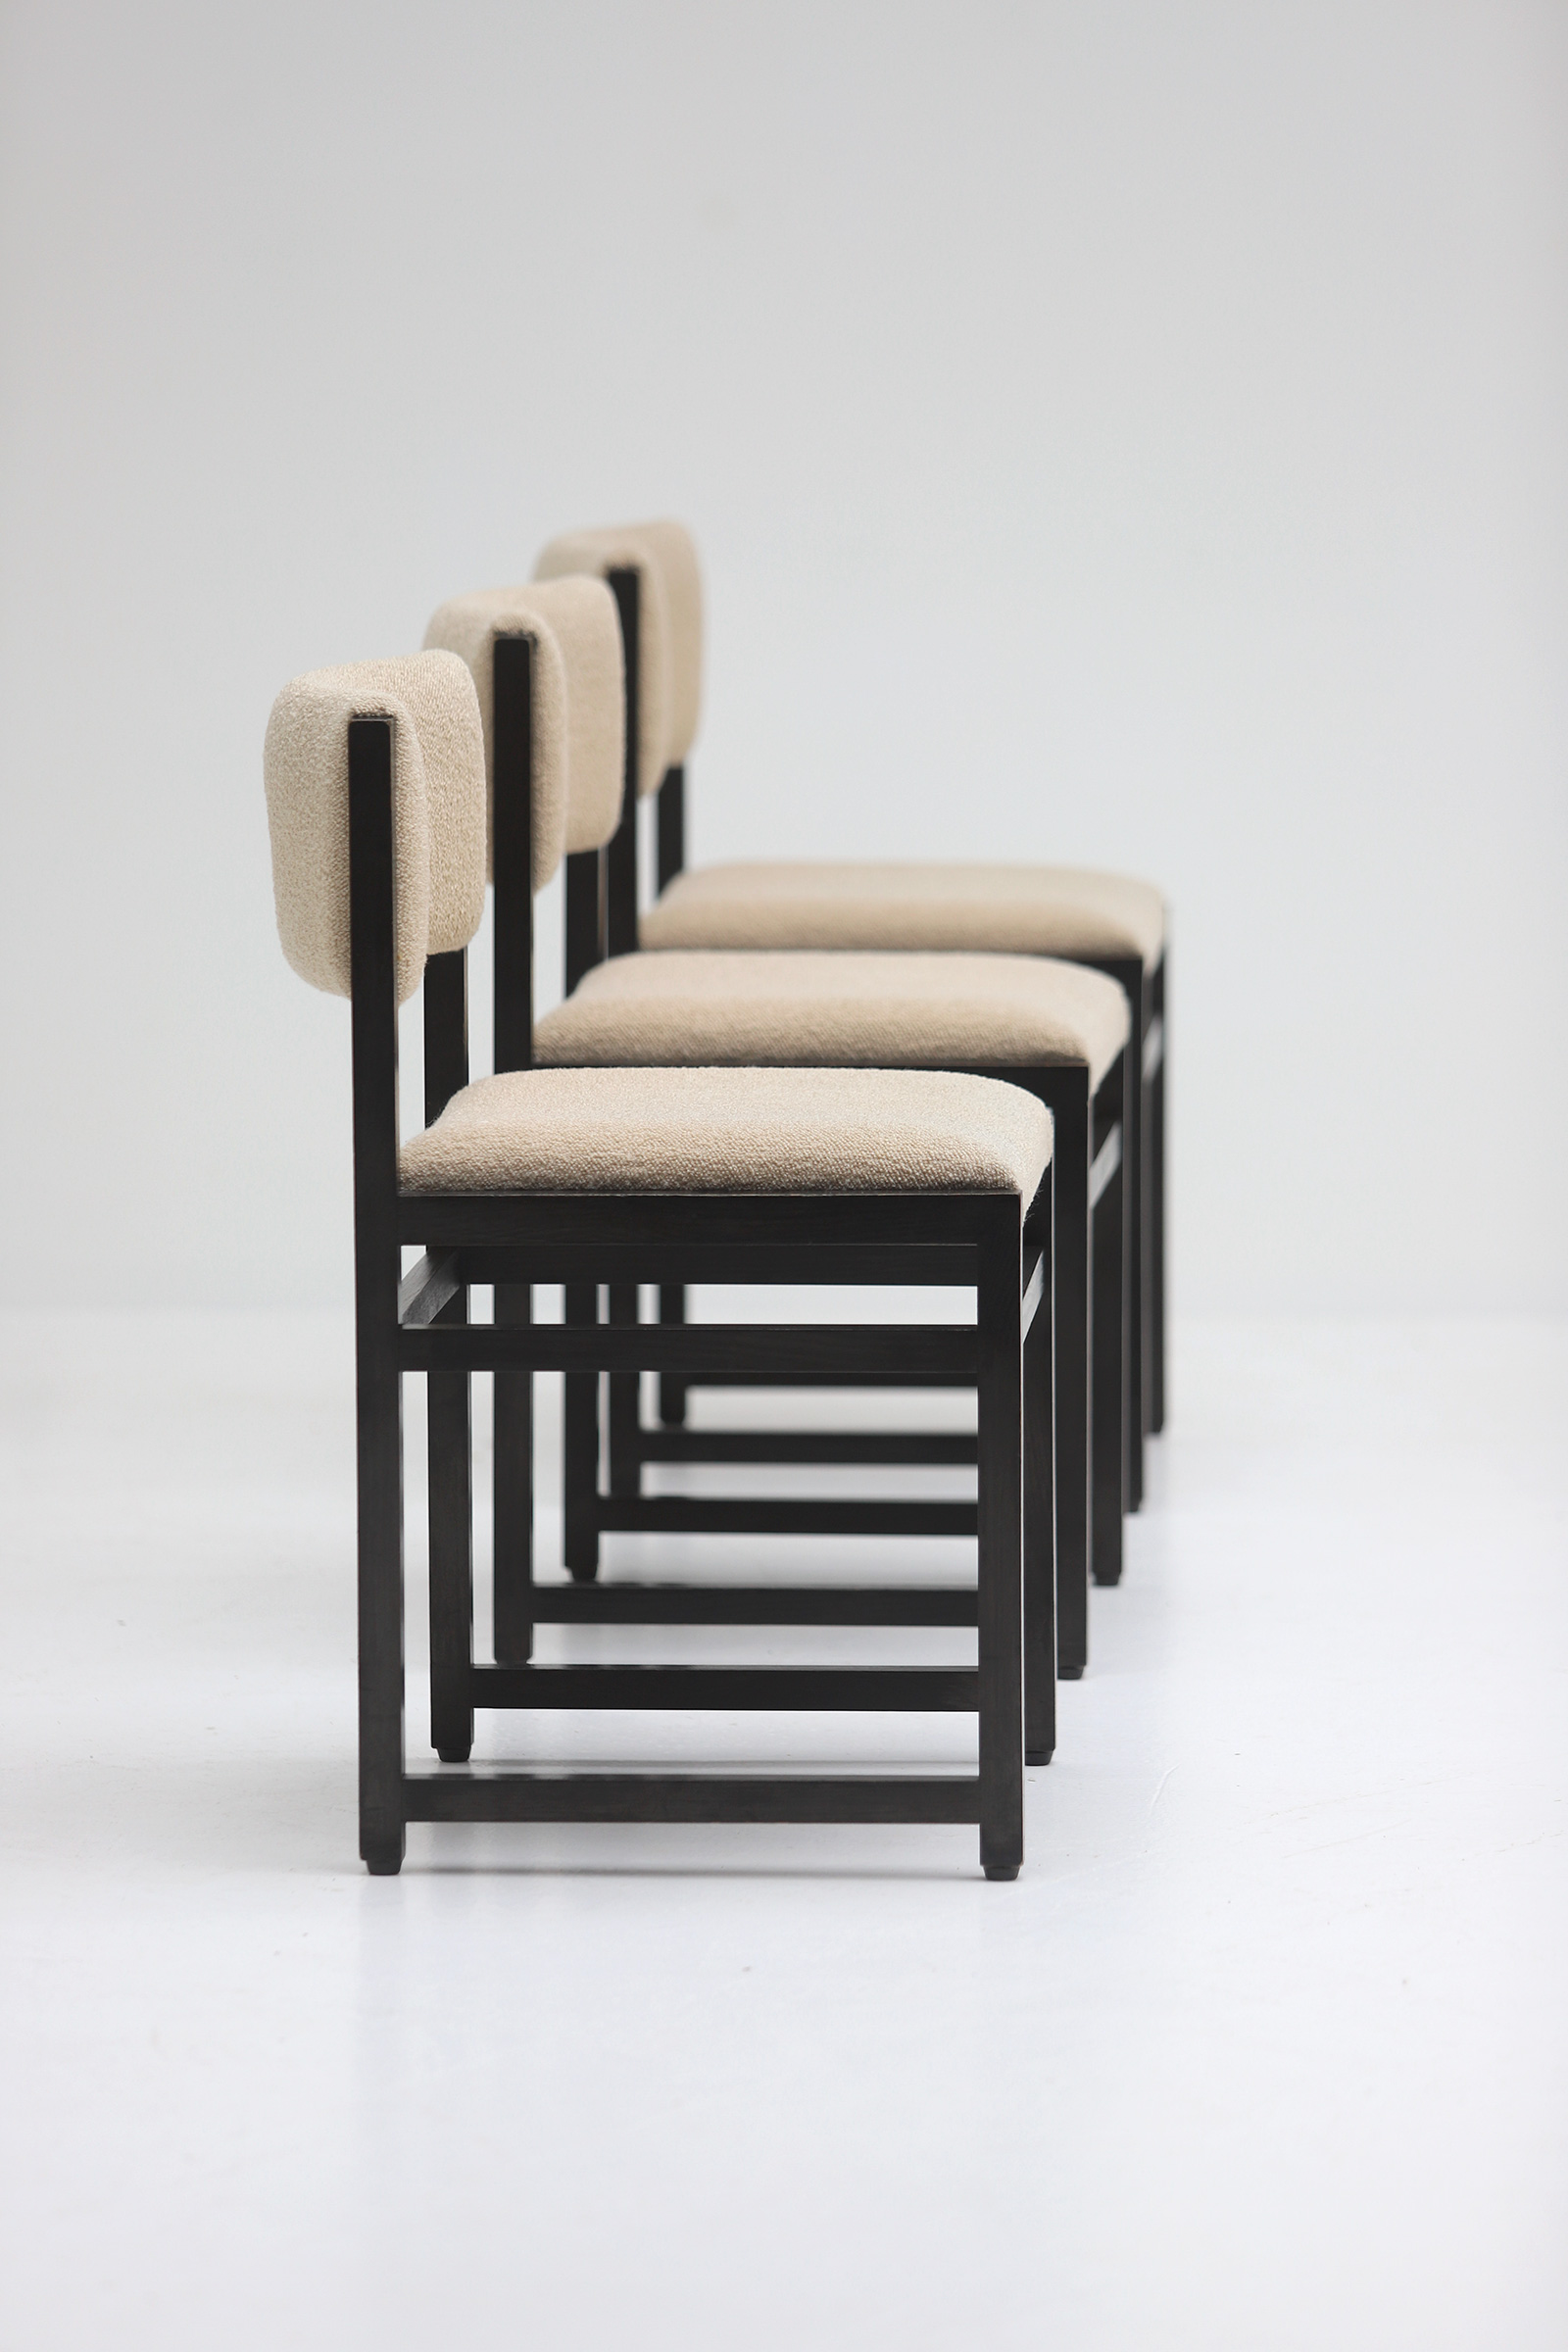 Six Black Stained Oak Chairs with Bouclé Upholsteryimage 2